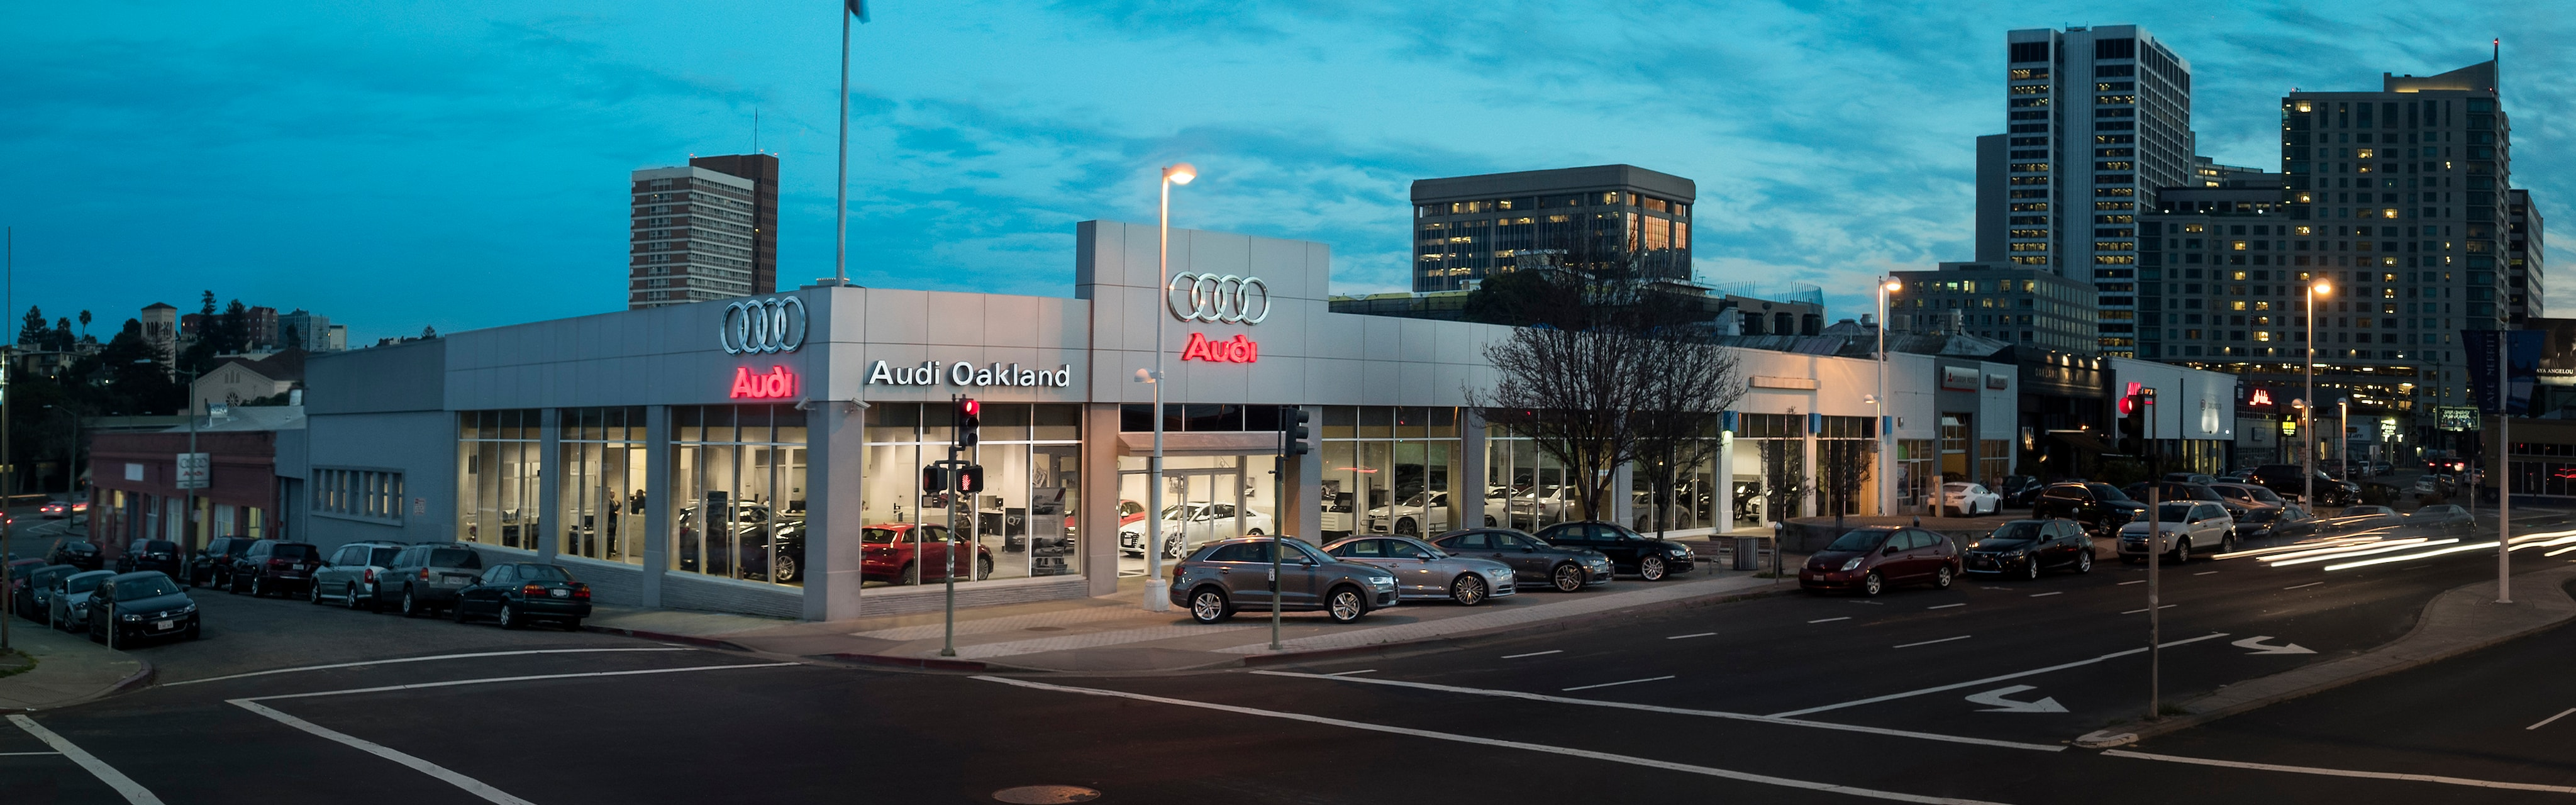 our south audi accommodations orlando about dealer htm dealership